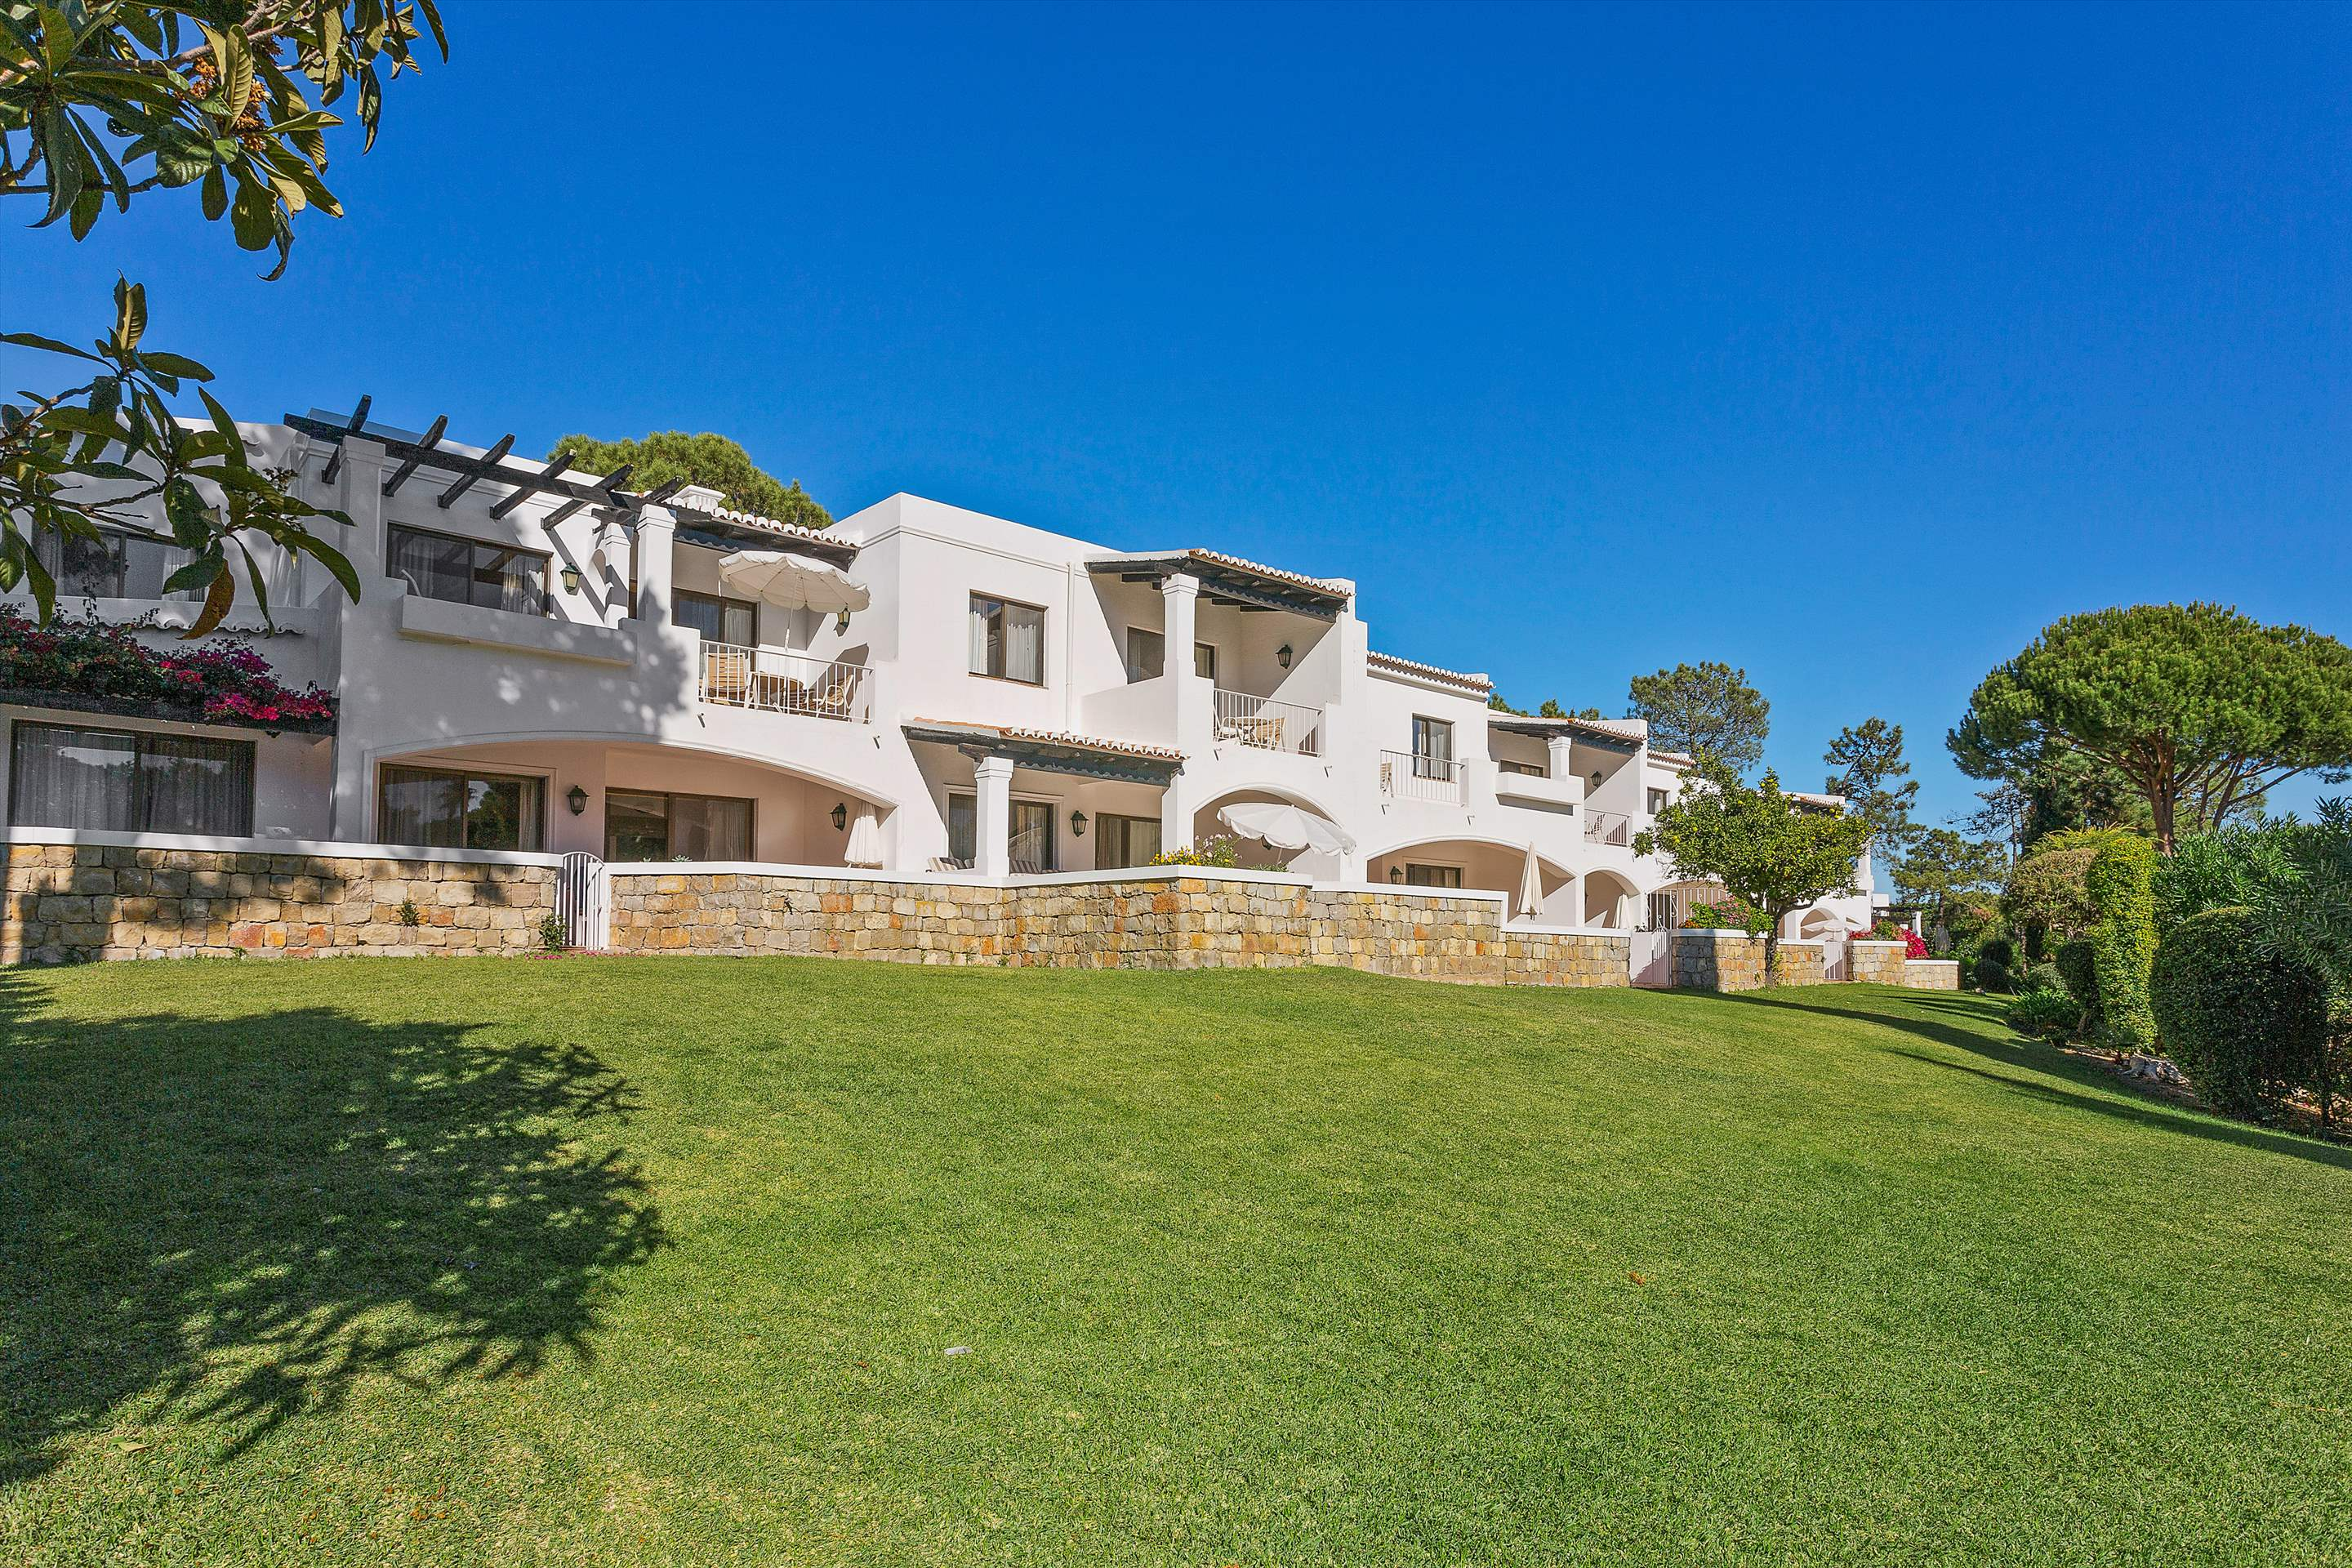 Four Seasons Country Club 2 bed, Superior - Thursday Arrival, 2 bedroom apartment in Four Seasons Country Club, Algarve